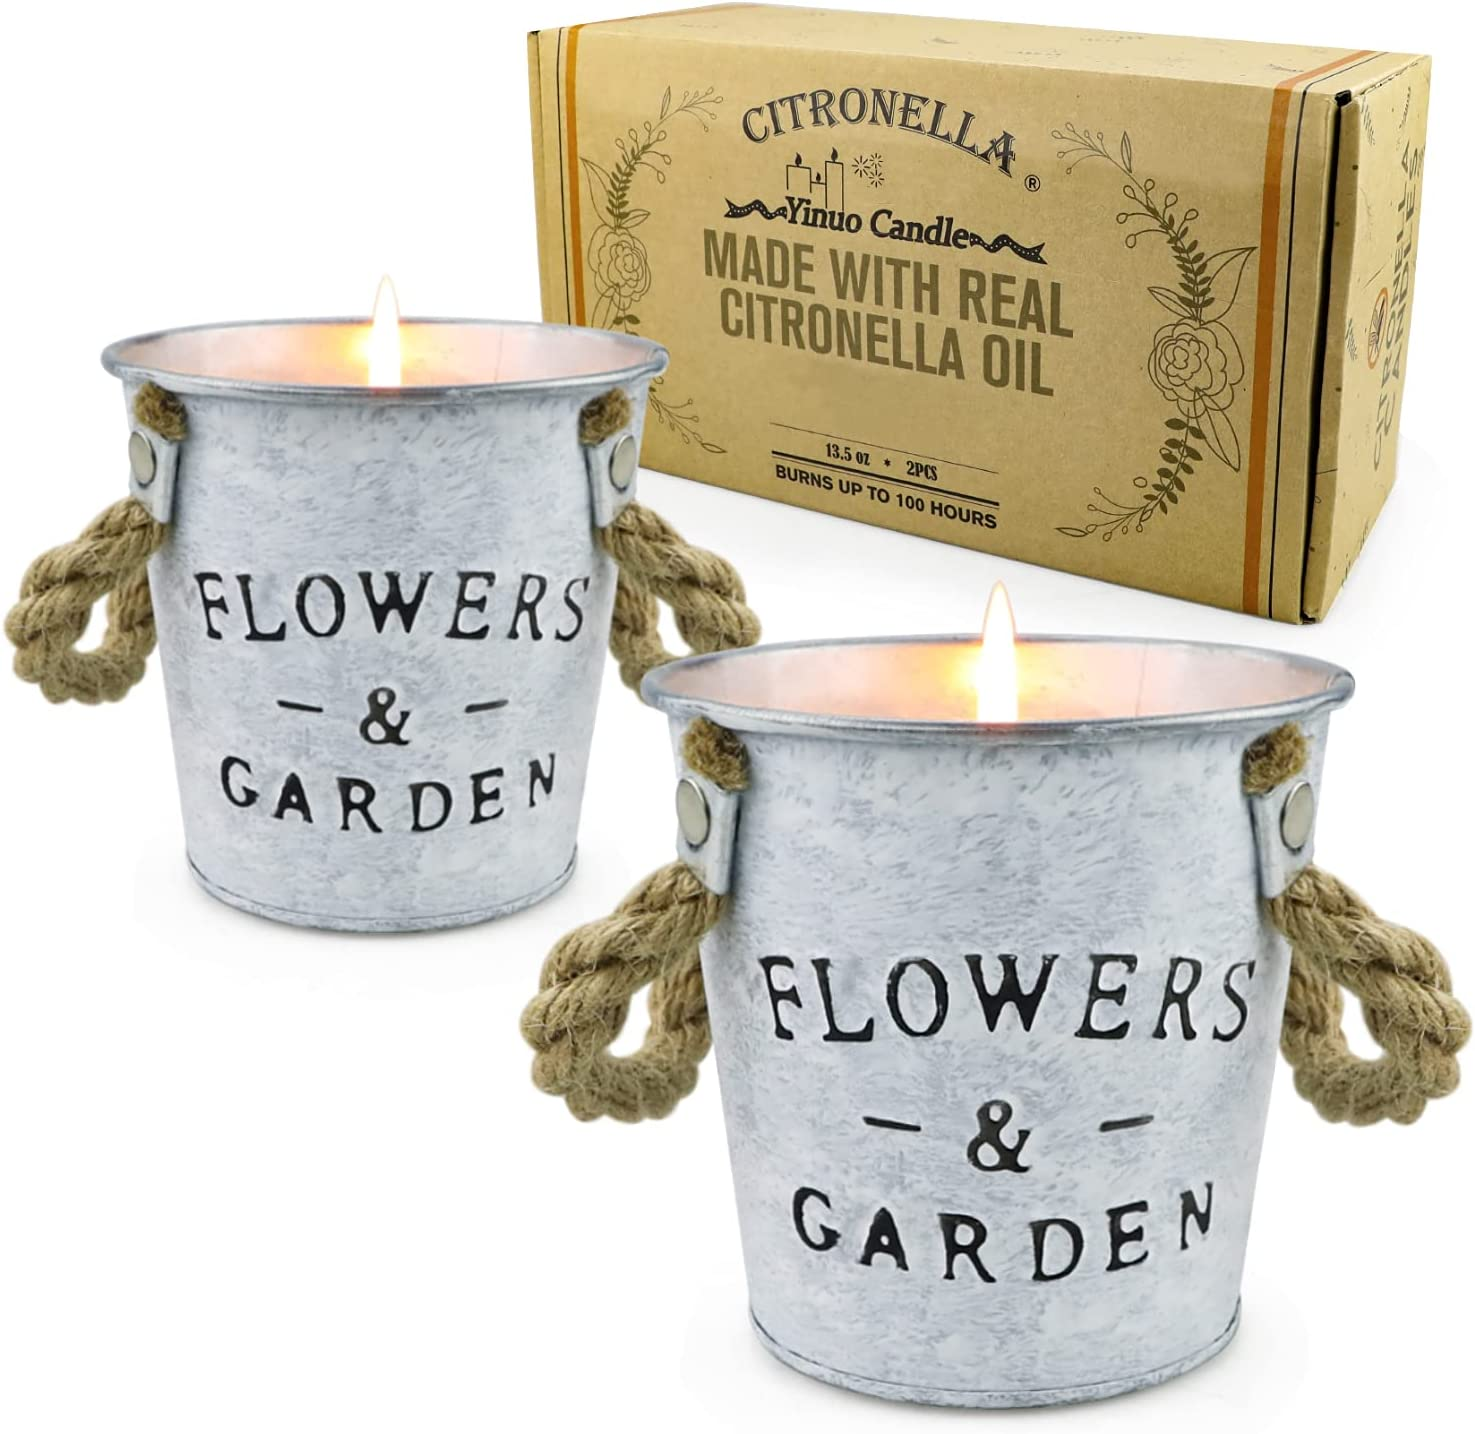 Citronella Candles Outdoor and Indoor, Large Citronella Scented Soy Candles with Lemongrass Oil, 2 Pack, 13.5 oz